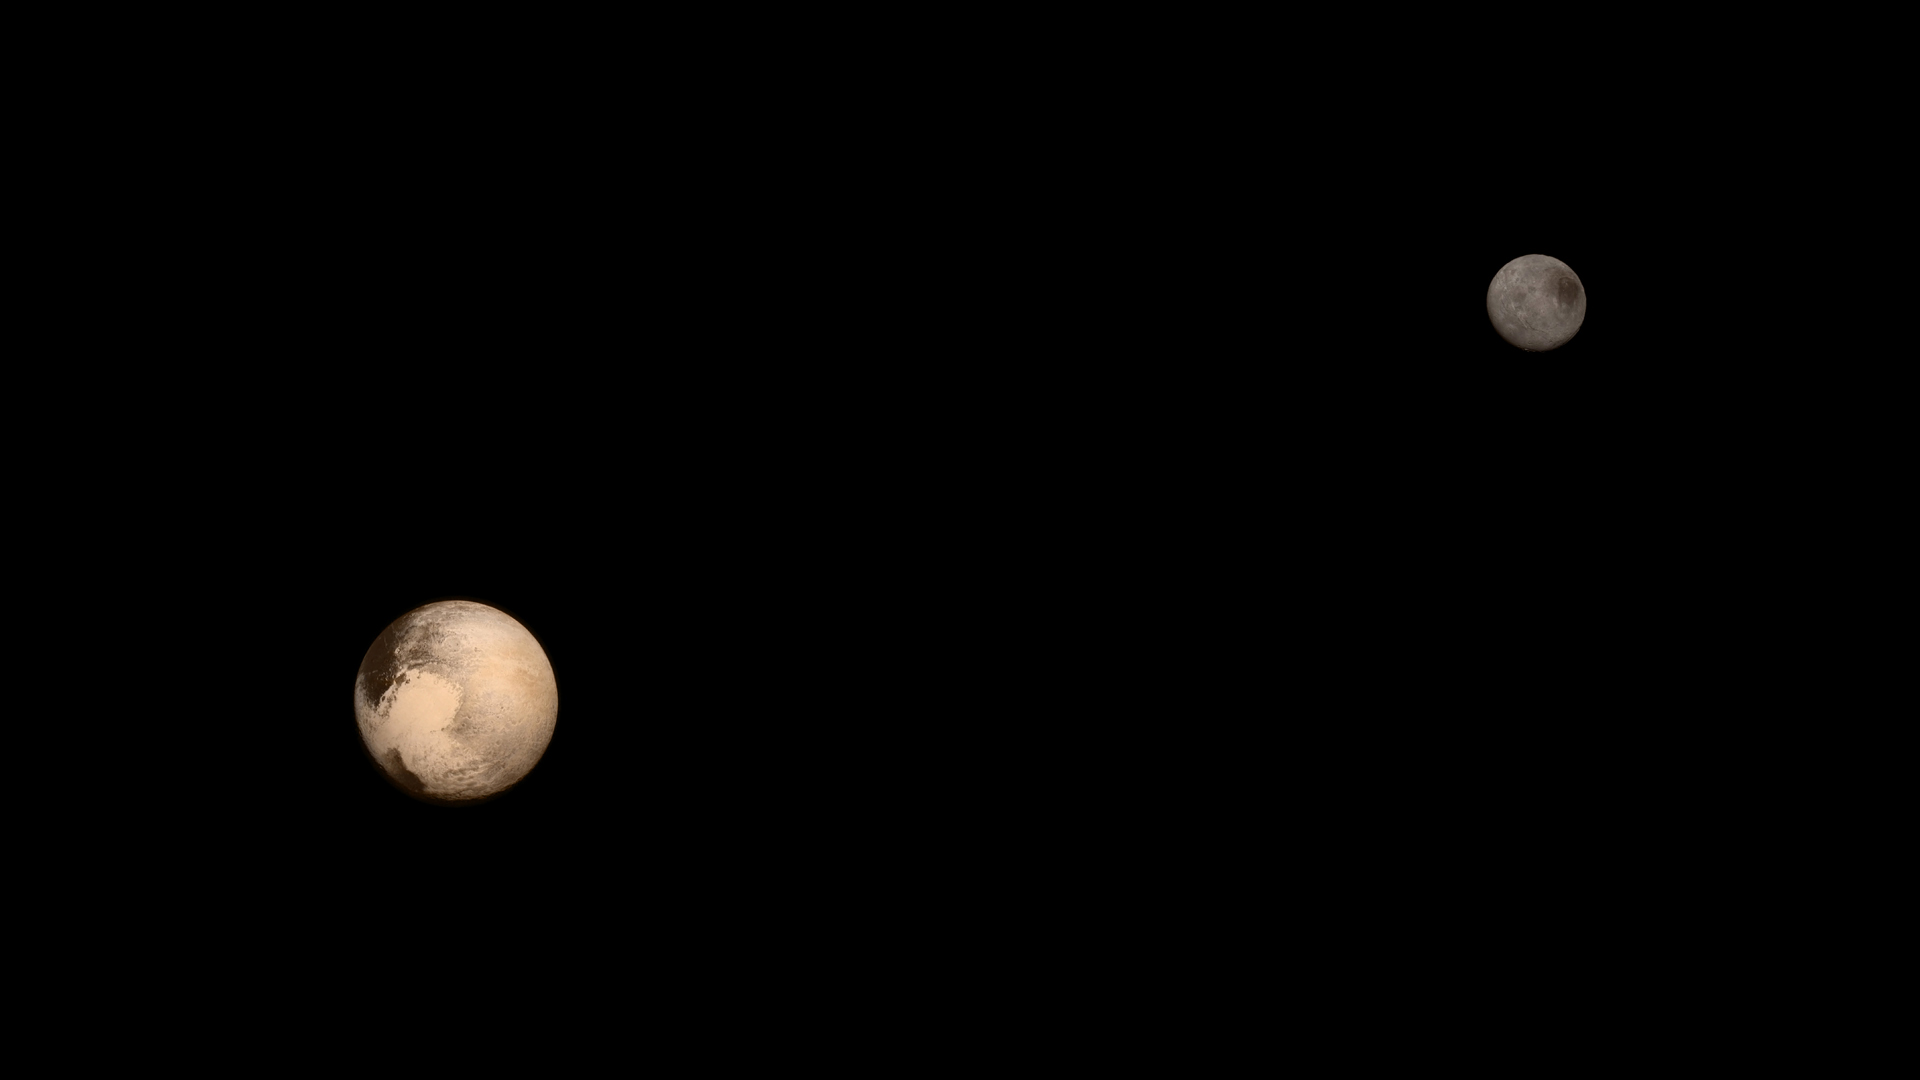 Color image of Pluto and its moon Charon